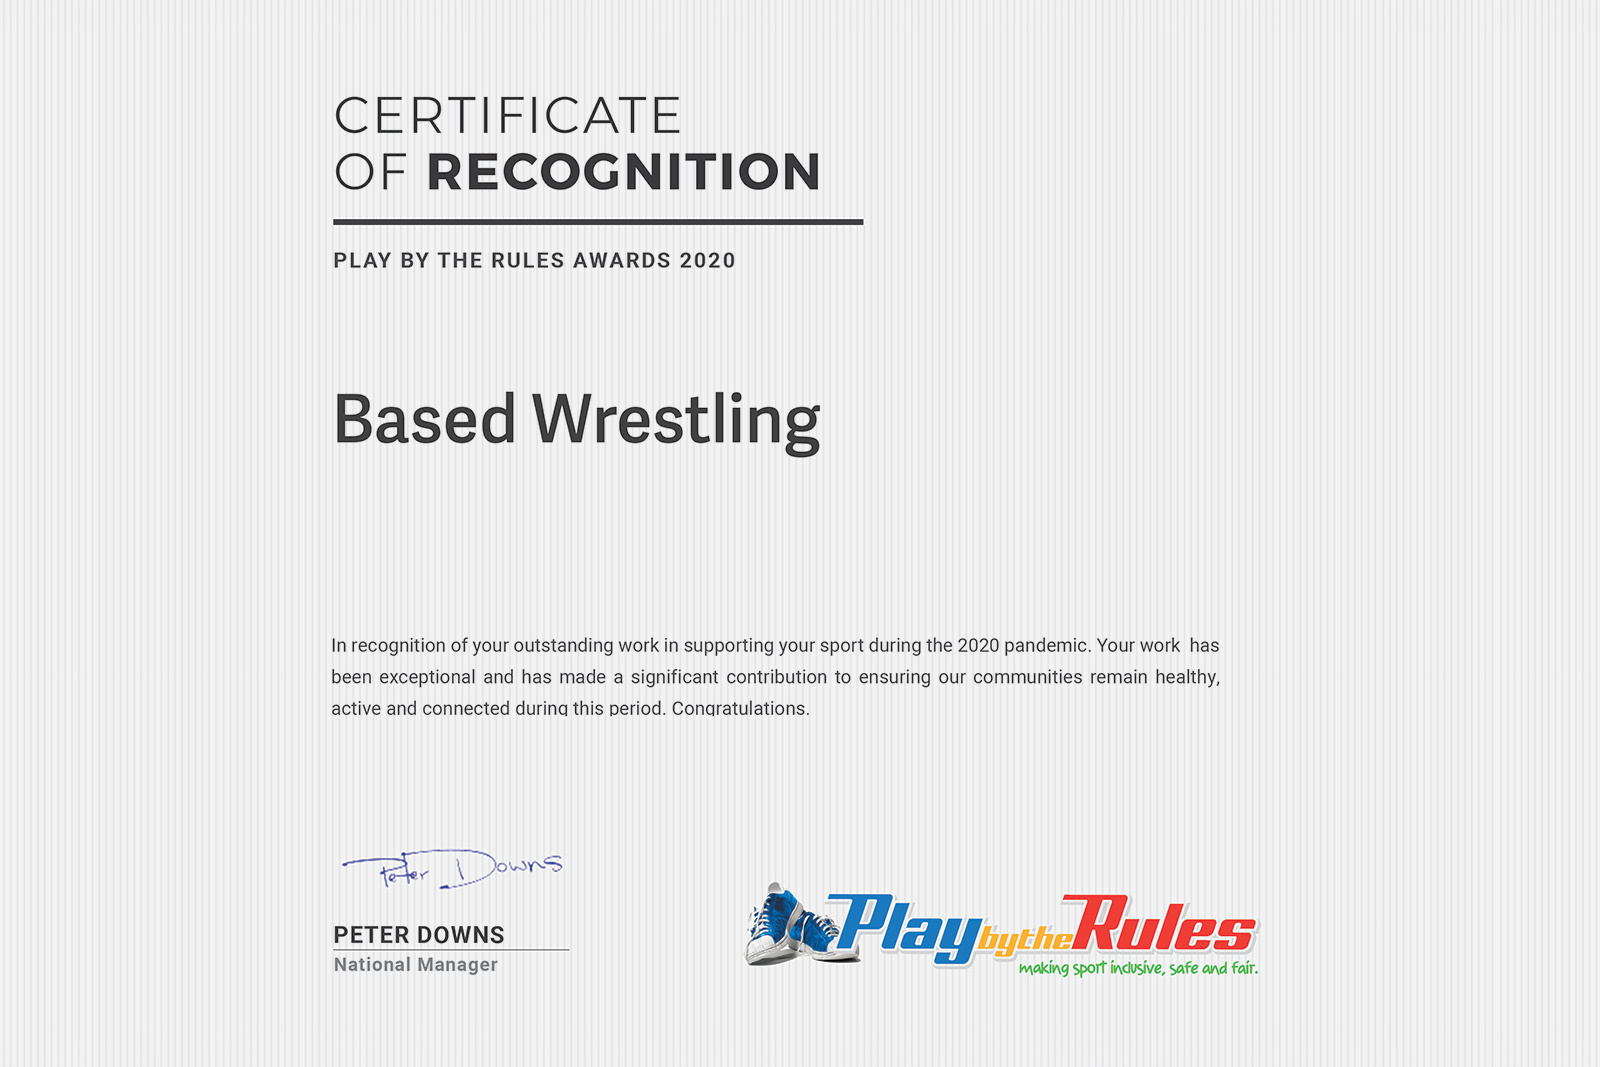 BASED Wrestling Play by the Rules Awards 2020 image